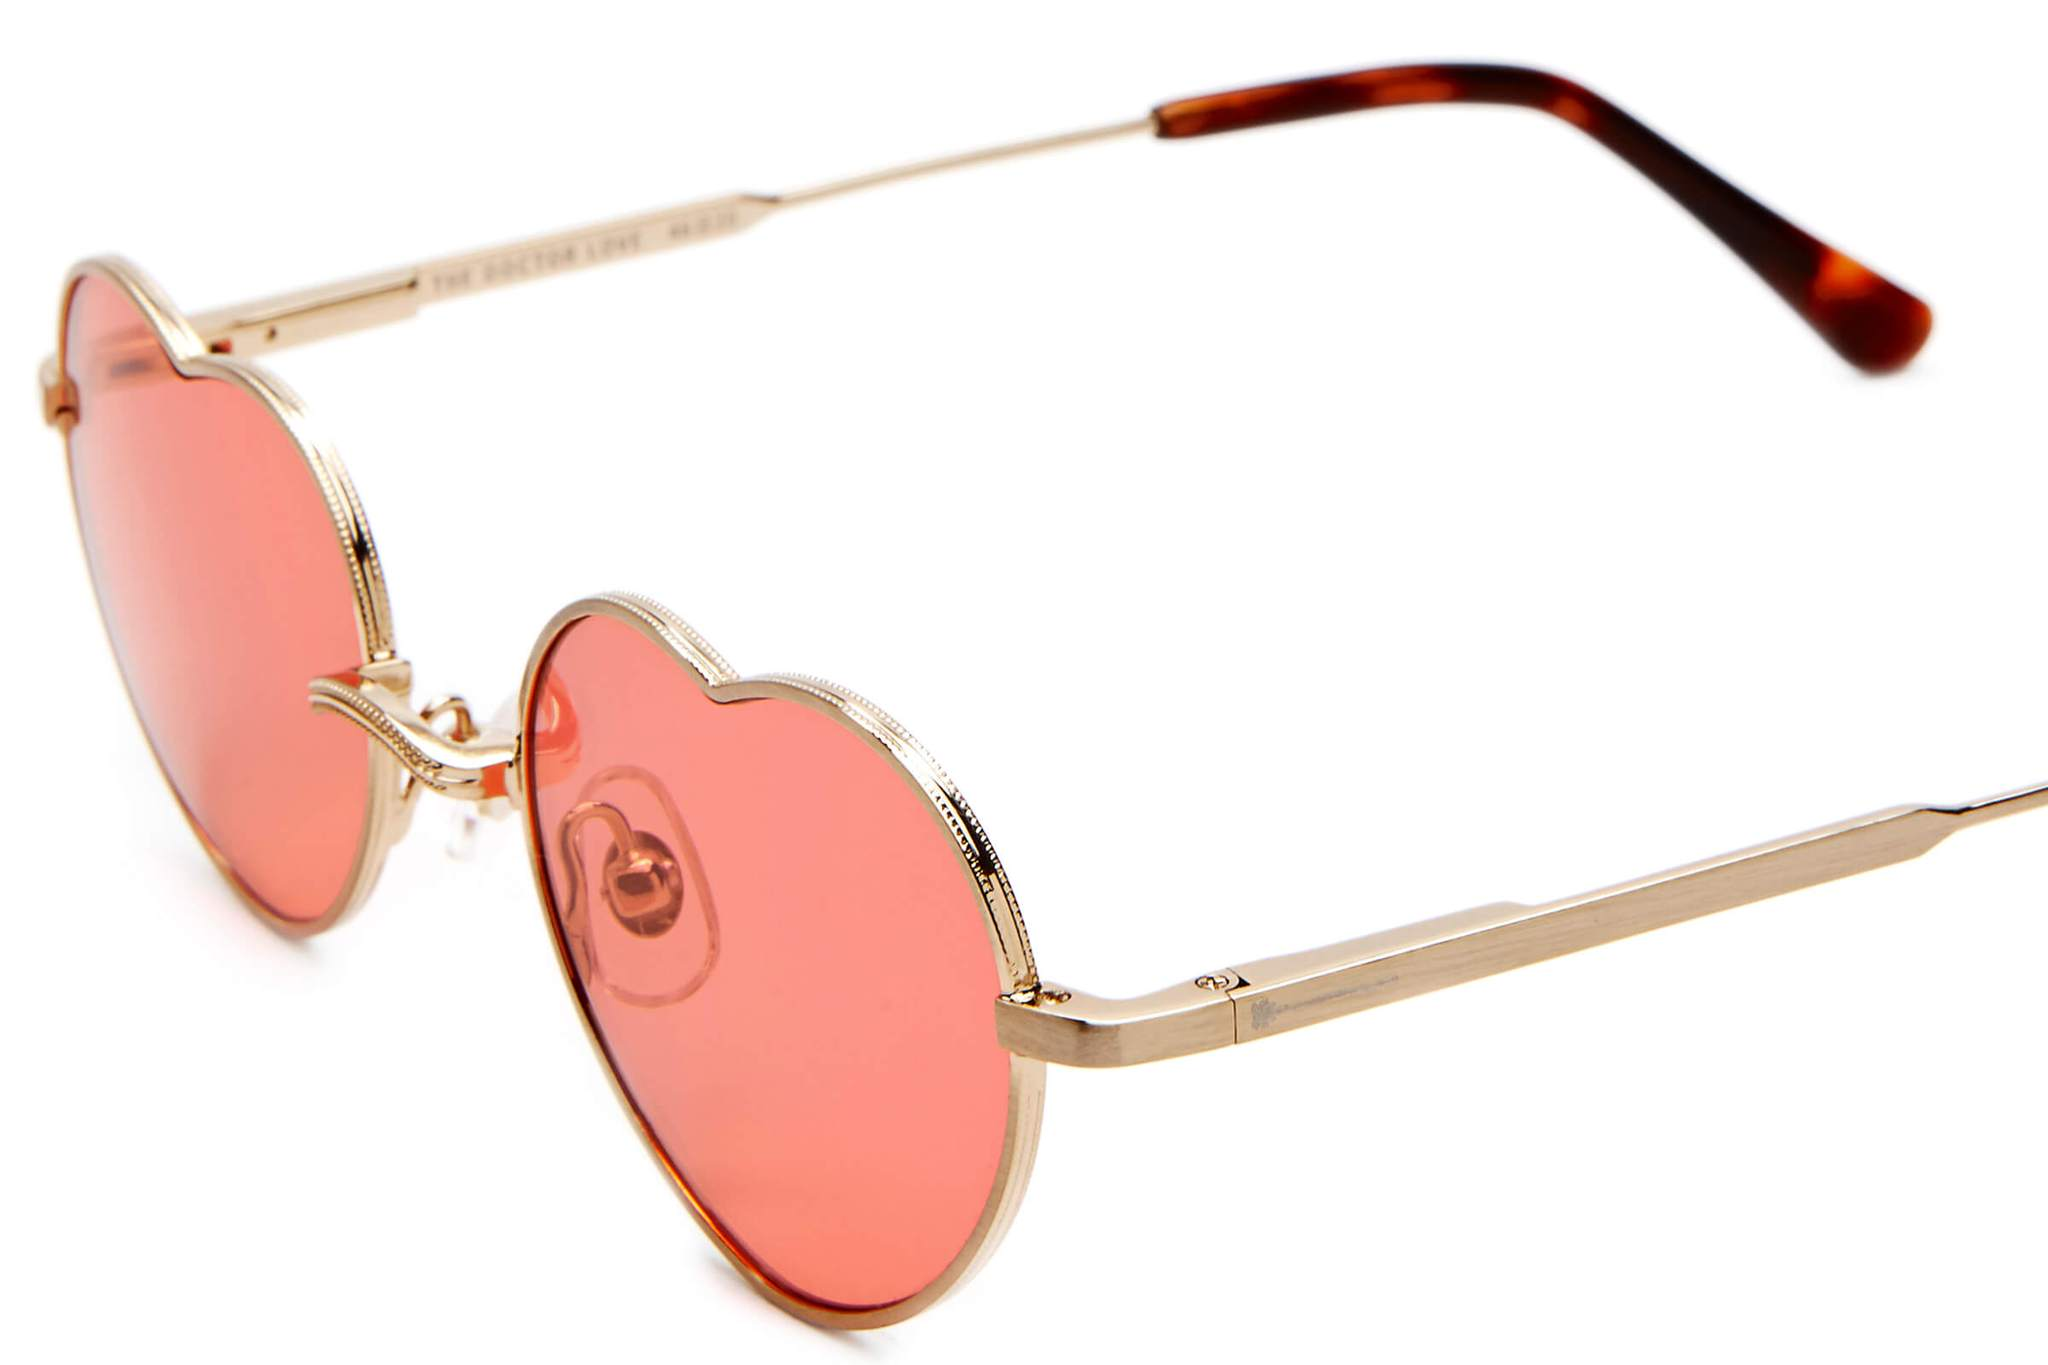 032d5dfee10 ... Crap Eyewear - The Doctor Love Brushed Gold Sunglasses   Deep Rose  Lenses ...